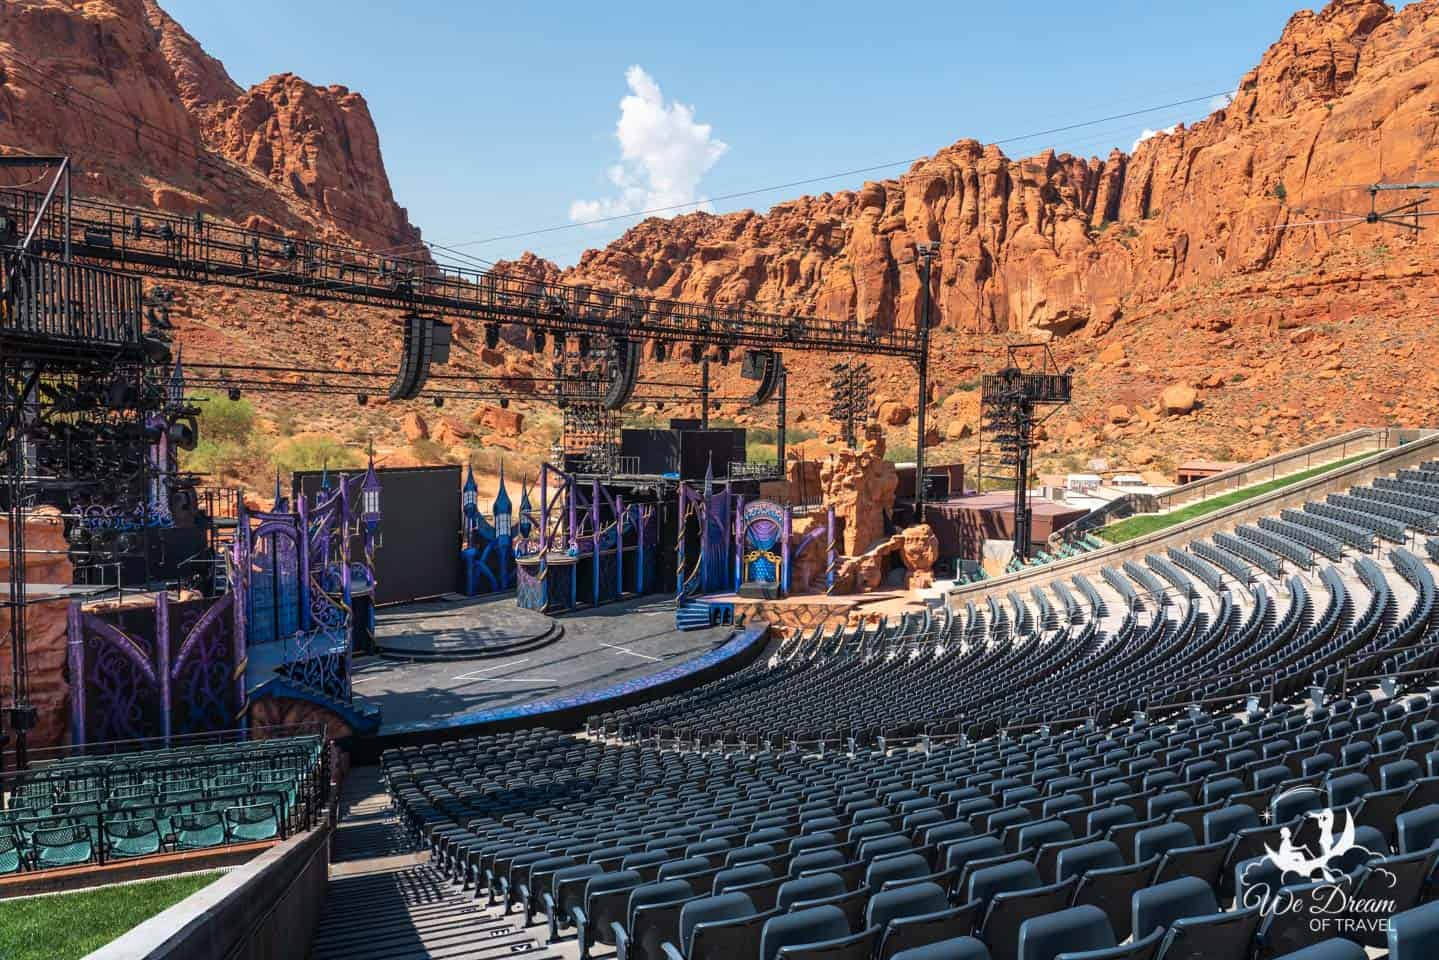 Catching a show at the amphitheater at Tuacahn Center for the Arts is one of the best things to do in St George.